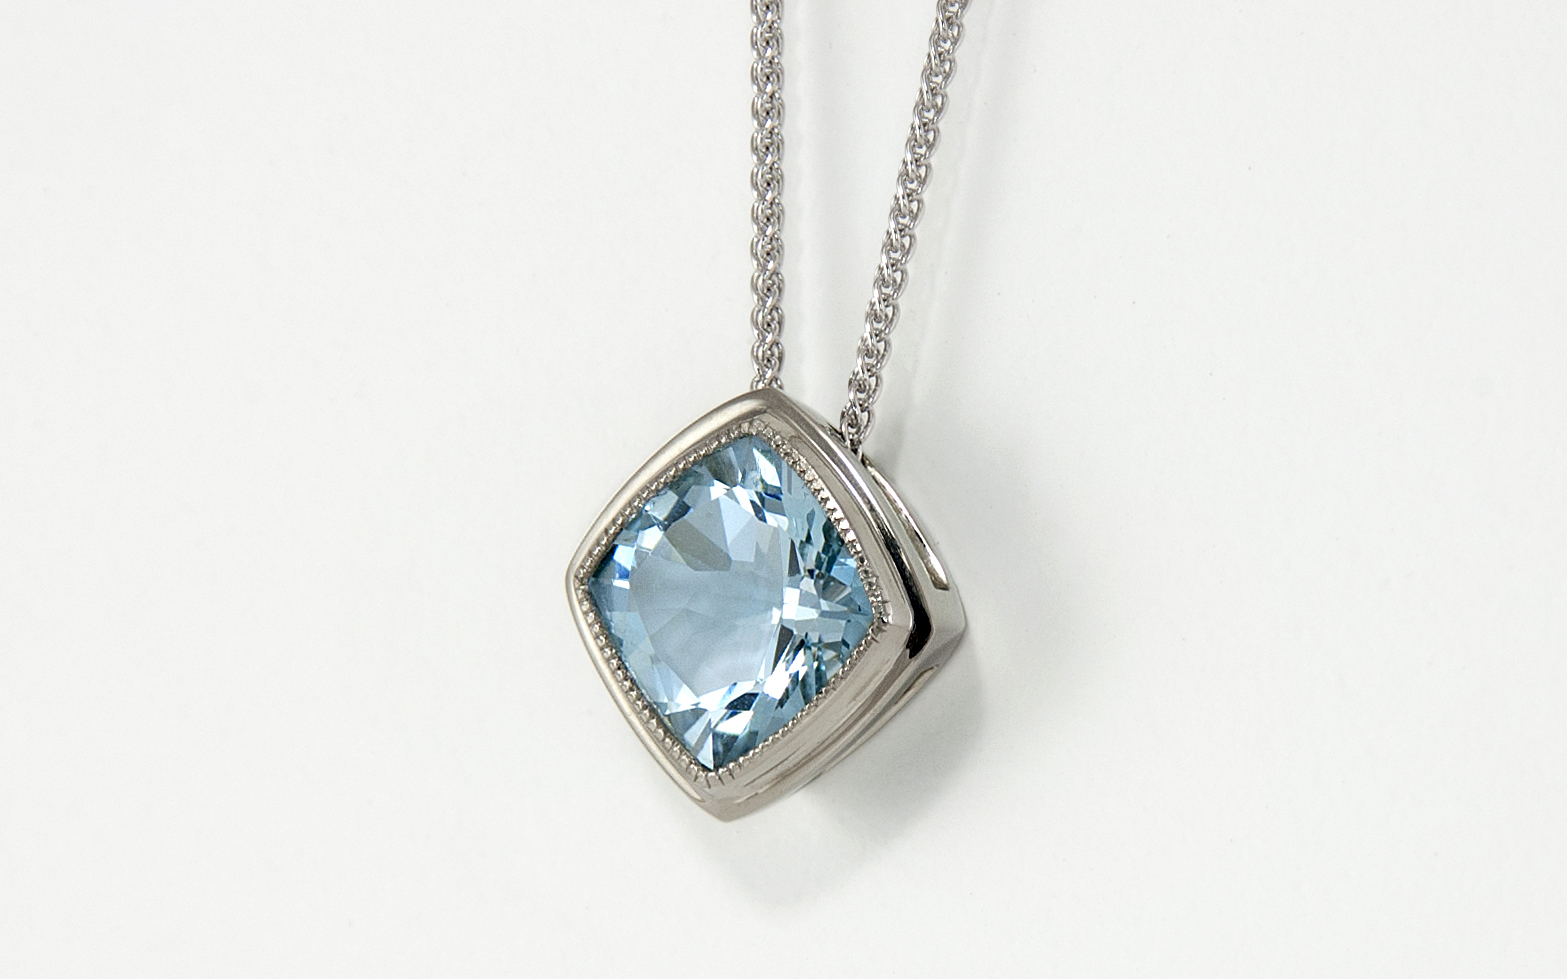 14KW 2.65ct Cushion Cut Aquamarine Pendant